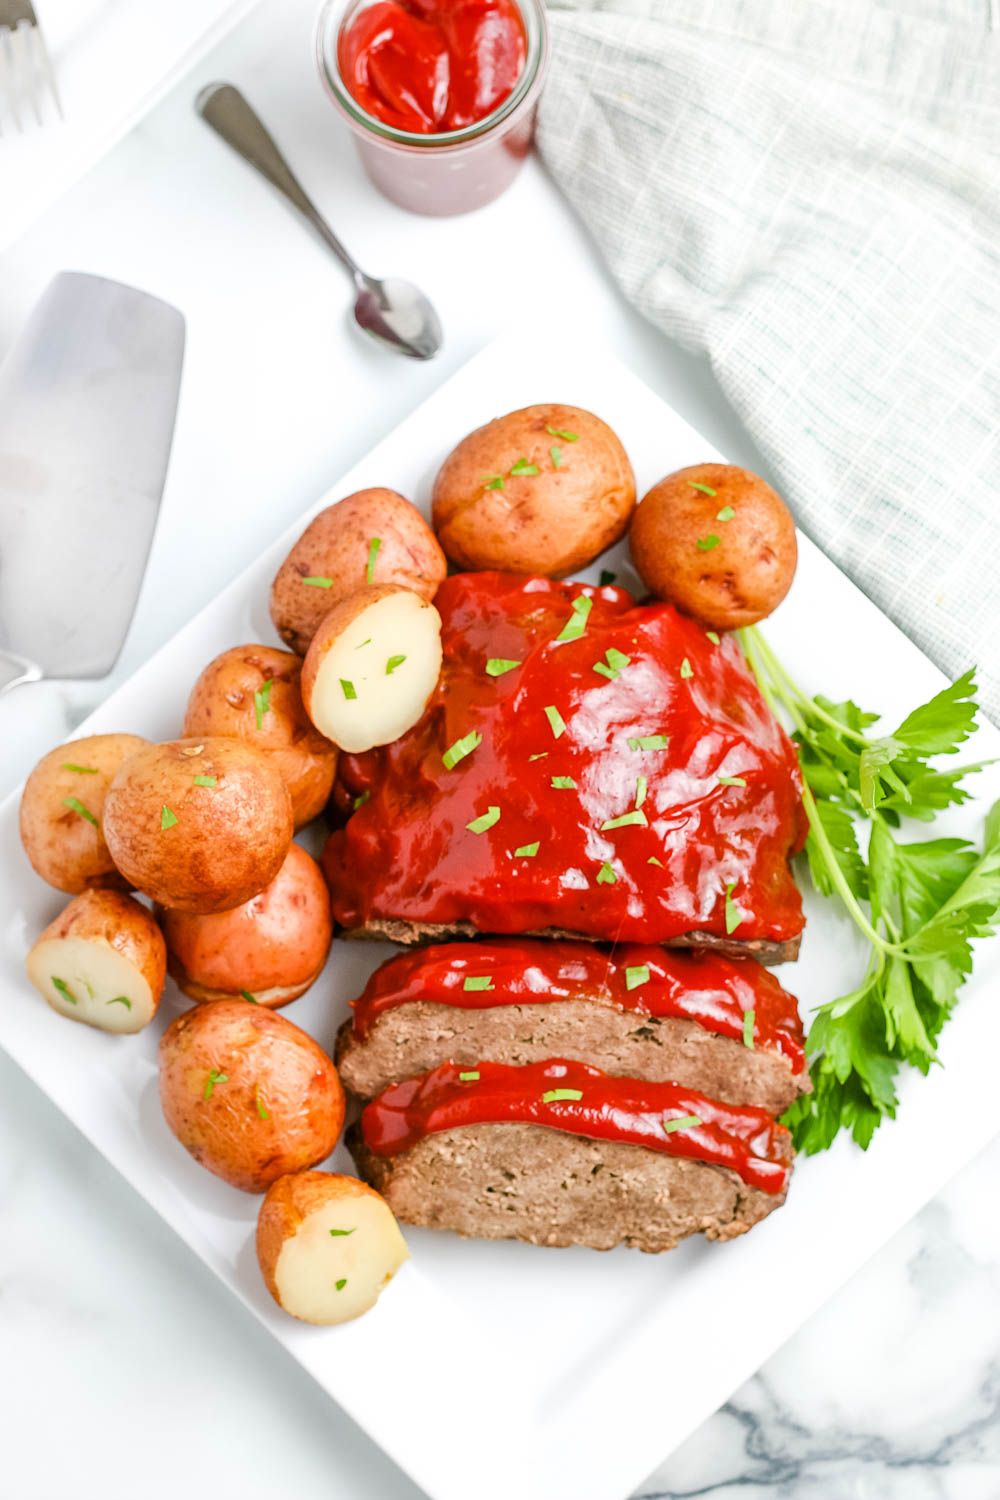 An overhead picture of the finished Instant Pot Meatloaf on a white serving platter.